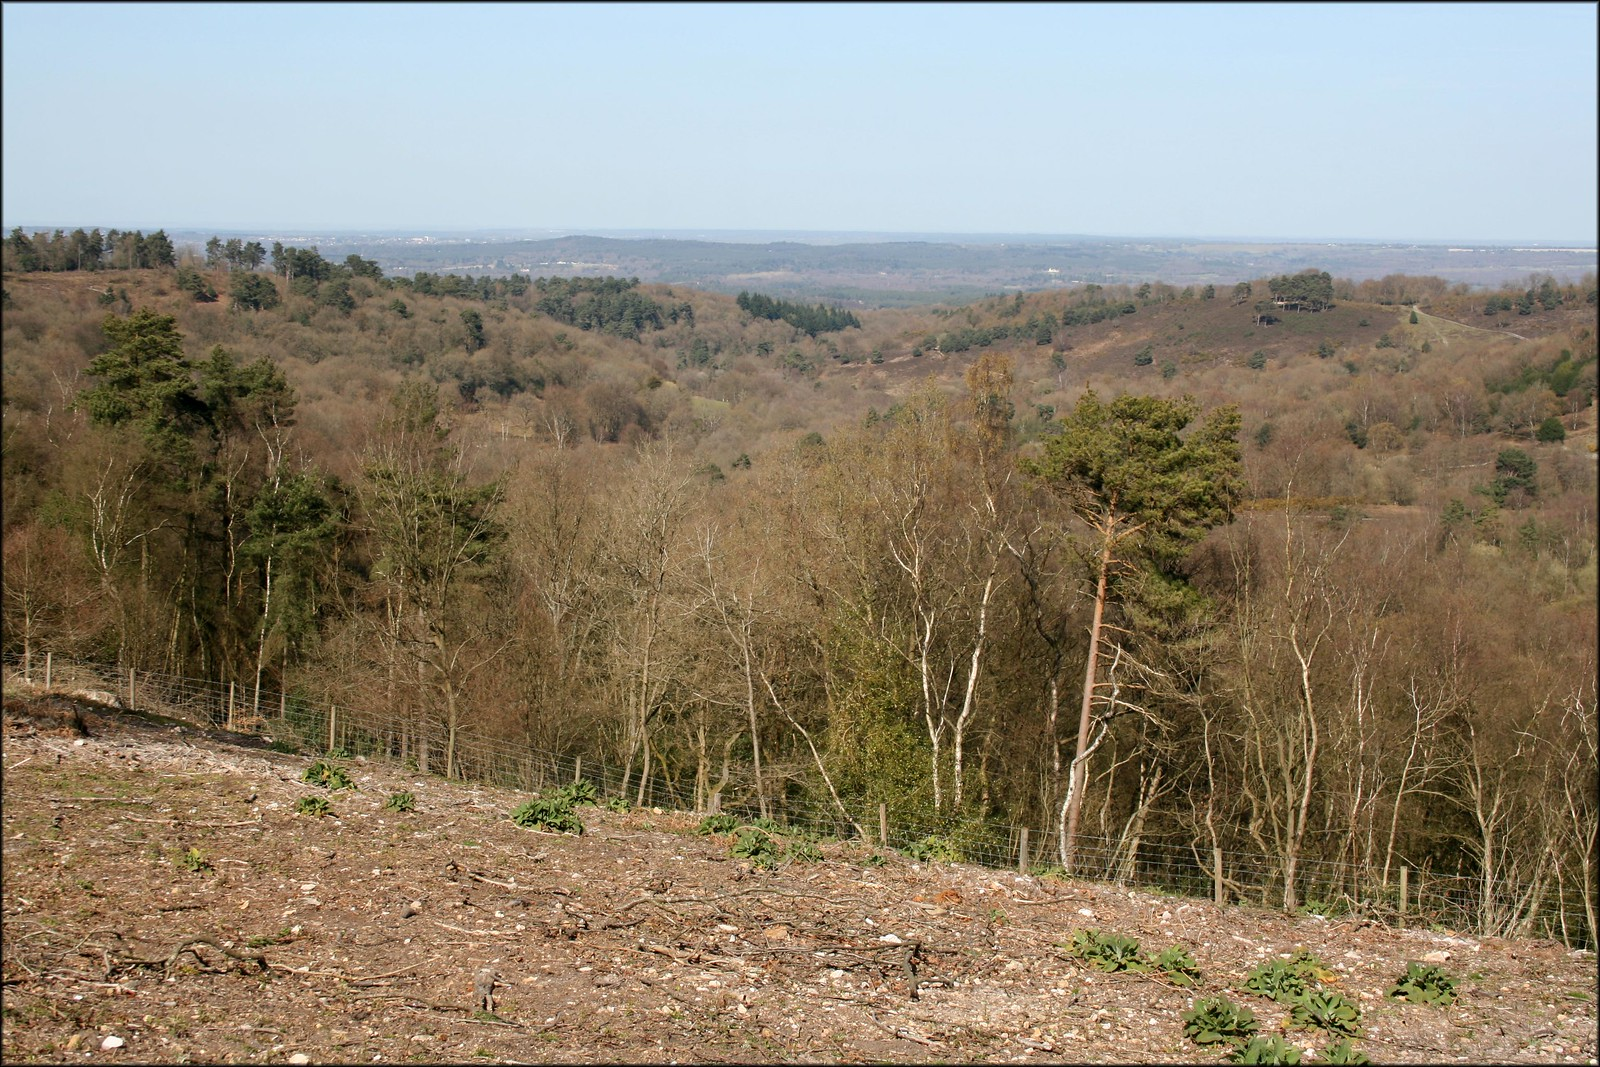 Hindhead common The view from Hindhead common